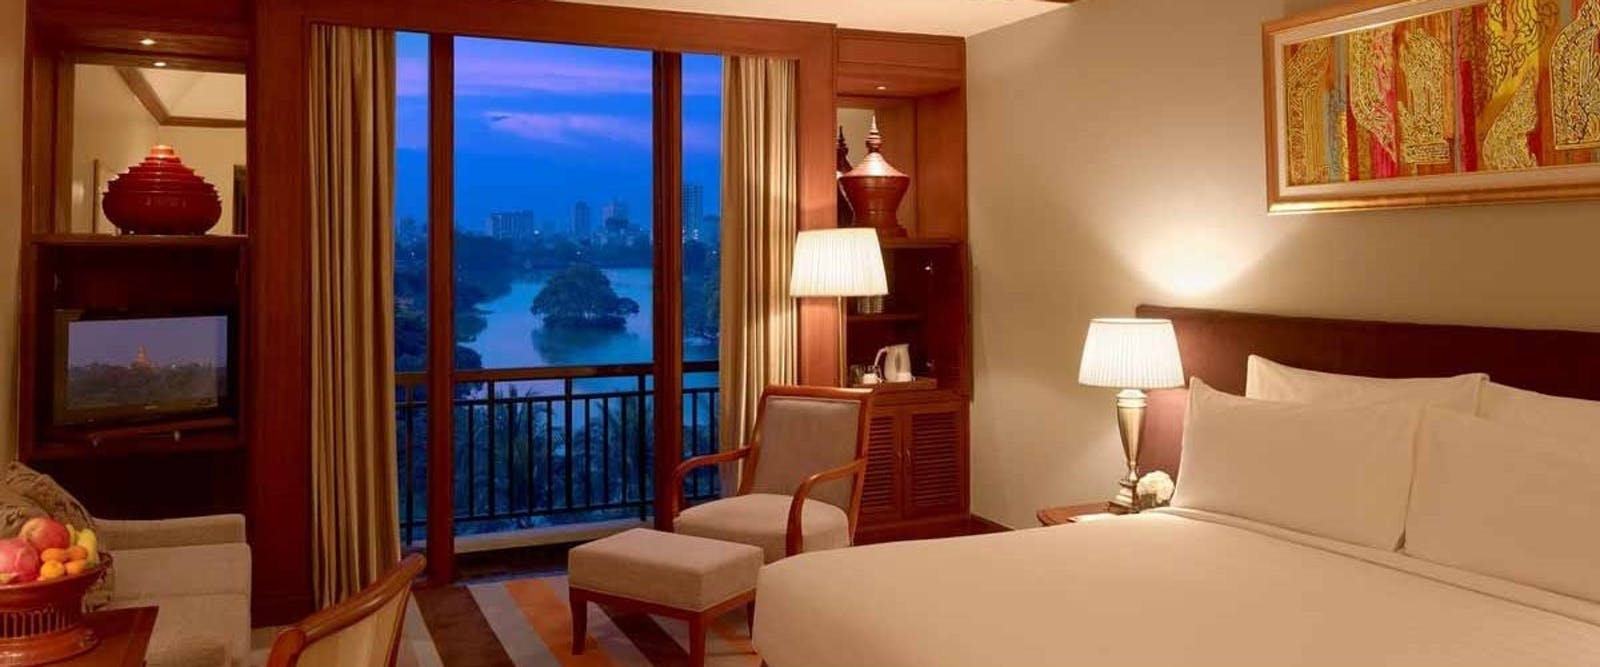 deluxe lake view at Chatrium Hotel, Yangon